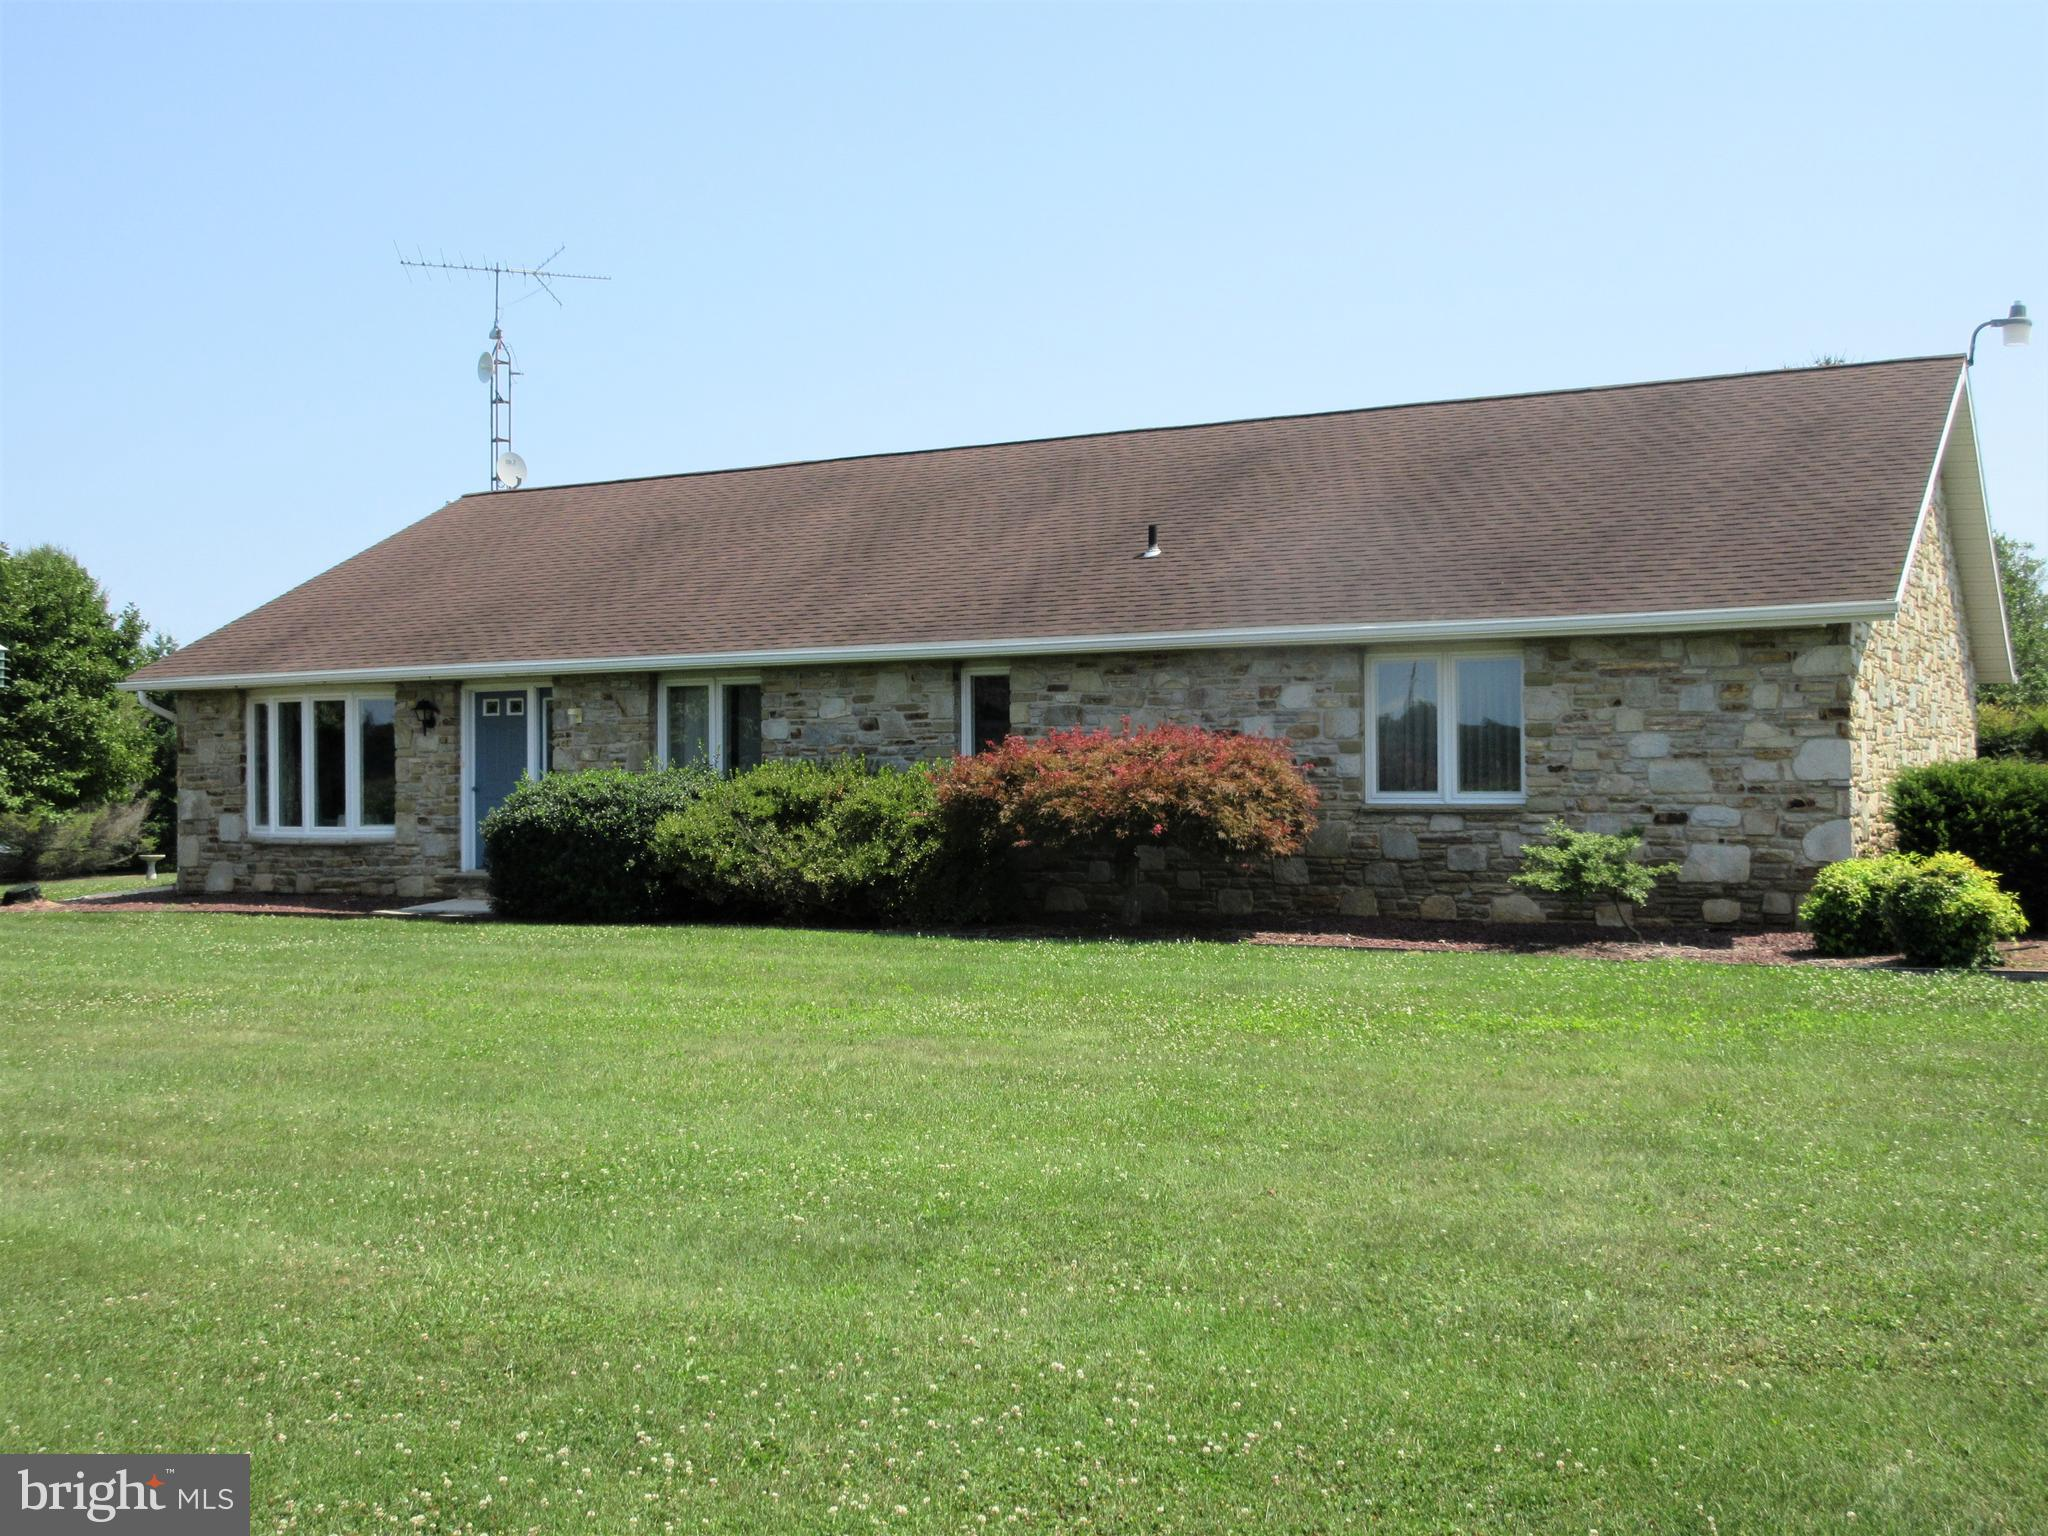 3/5 Bedroom Butler stone rancher on 3 acres surrounded by farmland! All new Anderson windows and a new geothermal heat system or great efficiency! Large wood burning fireplace with wood insert.  Sewing/craft room and office could easily become bedrooms 4 and 5.  Large first floor laundry room with sink and lots of cabinets. Peaceful country views. Great location for a large garden and bring your animals. Jenn air grill corian countertops, lots of cabinets, refrigerator and double oven in kitchen.  Large basement with 8 foot ceilings includes indoor horseshoes/golf driving range with net-archery pit 50 feet long with 14 foot ceilings, pool table and air hockey table included. Sewing/craft room, laundry room. 2 walk up attics, large shed, chicken house. Above ground pool. 3 outdoor horseshoe pits with lights might also make a good tennis court or archery range. One year home warranty included with full price offer. Tenants are moving out by end of September.